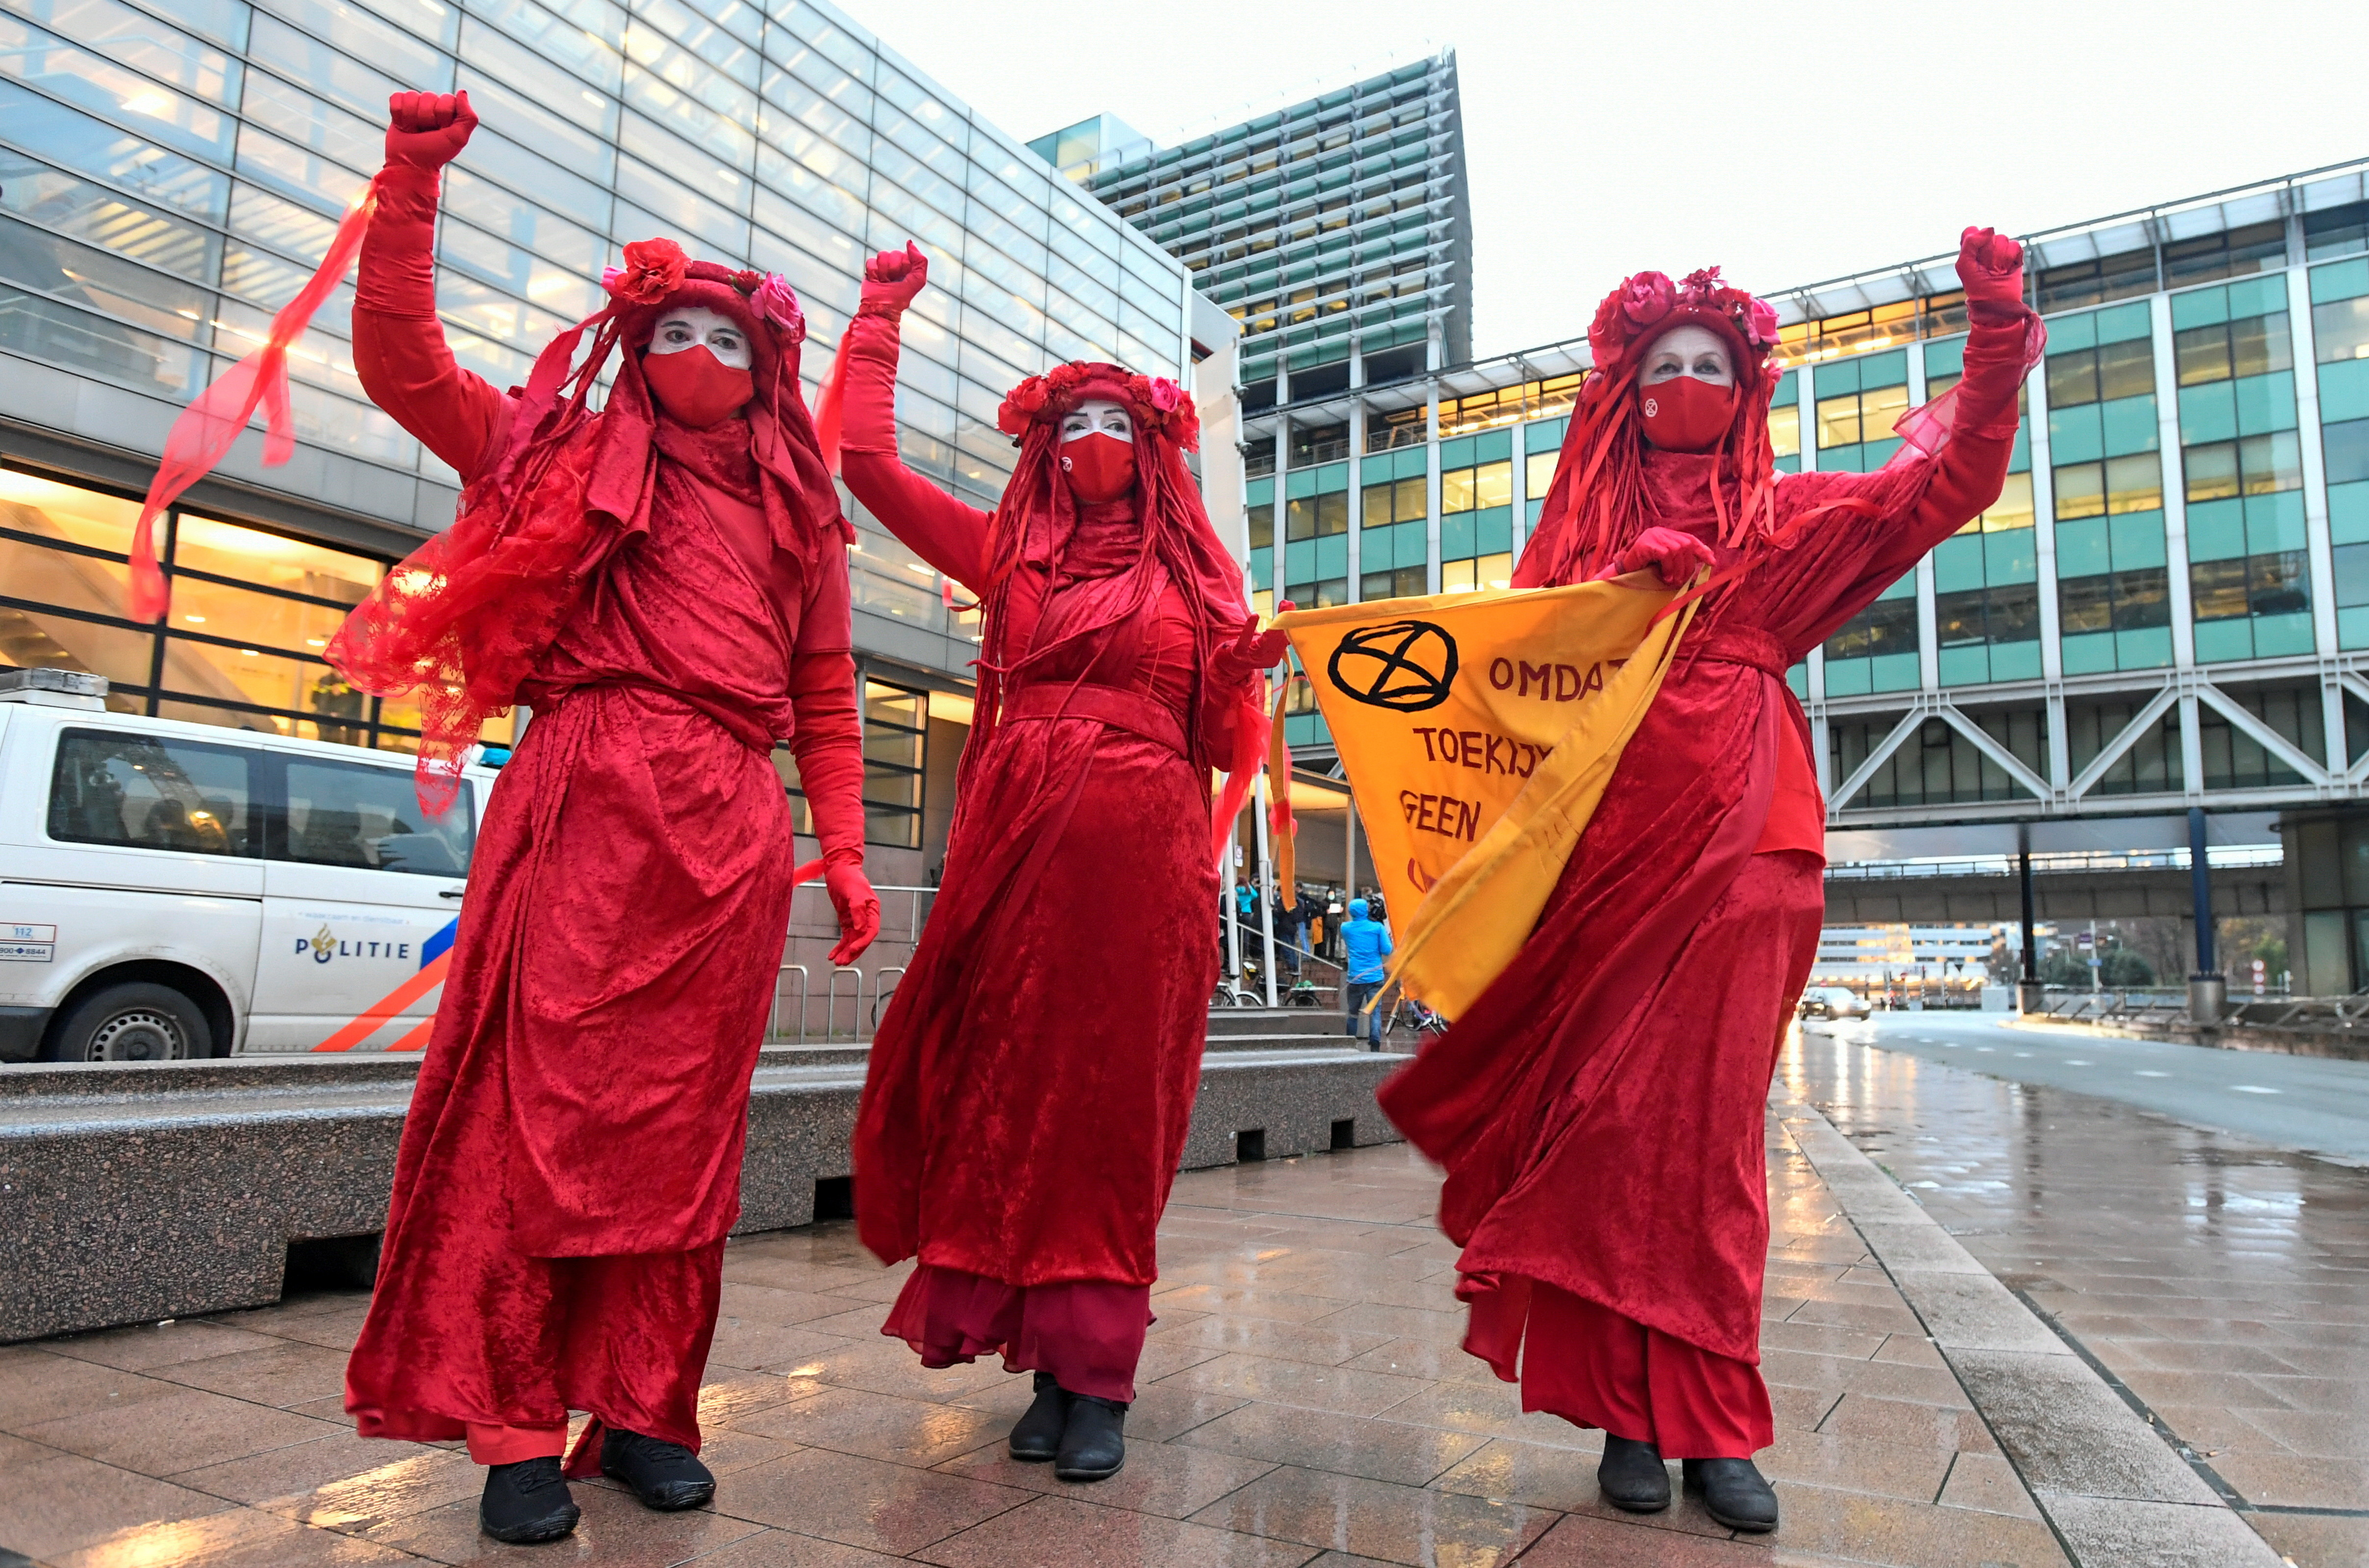 Environmental activists protest outside of a court during a hearing in a case environmentalist and human rights groups have brought on against Royal Dutch Shell to force the energy firm to cut its reliance on fossil fuels, in The Hague, Netherlands December 1, 2020. REUTERS/Piroschka Van De Wouw - RC28EK91T7BB